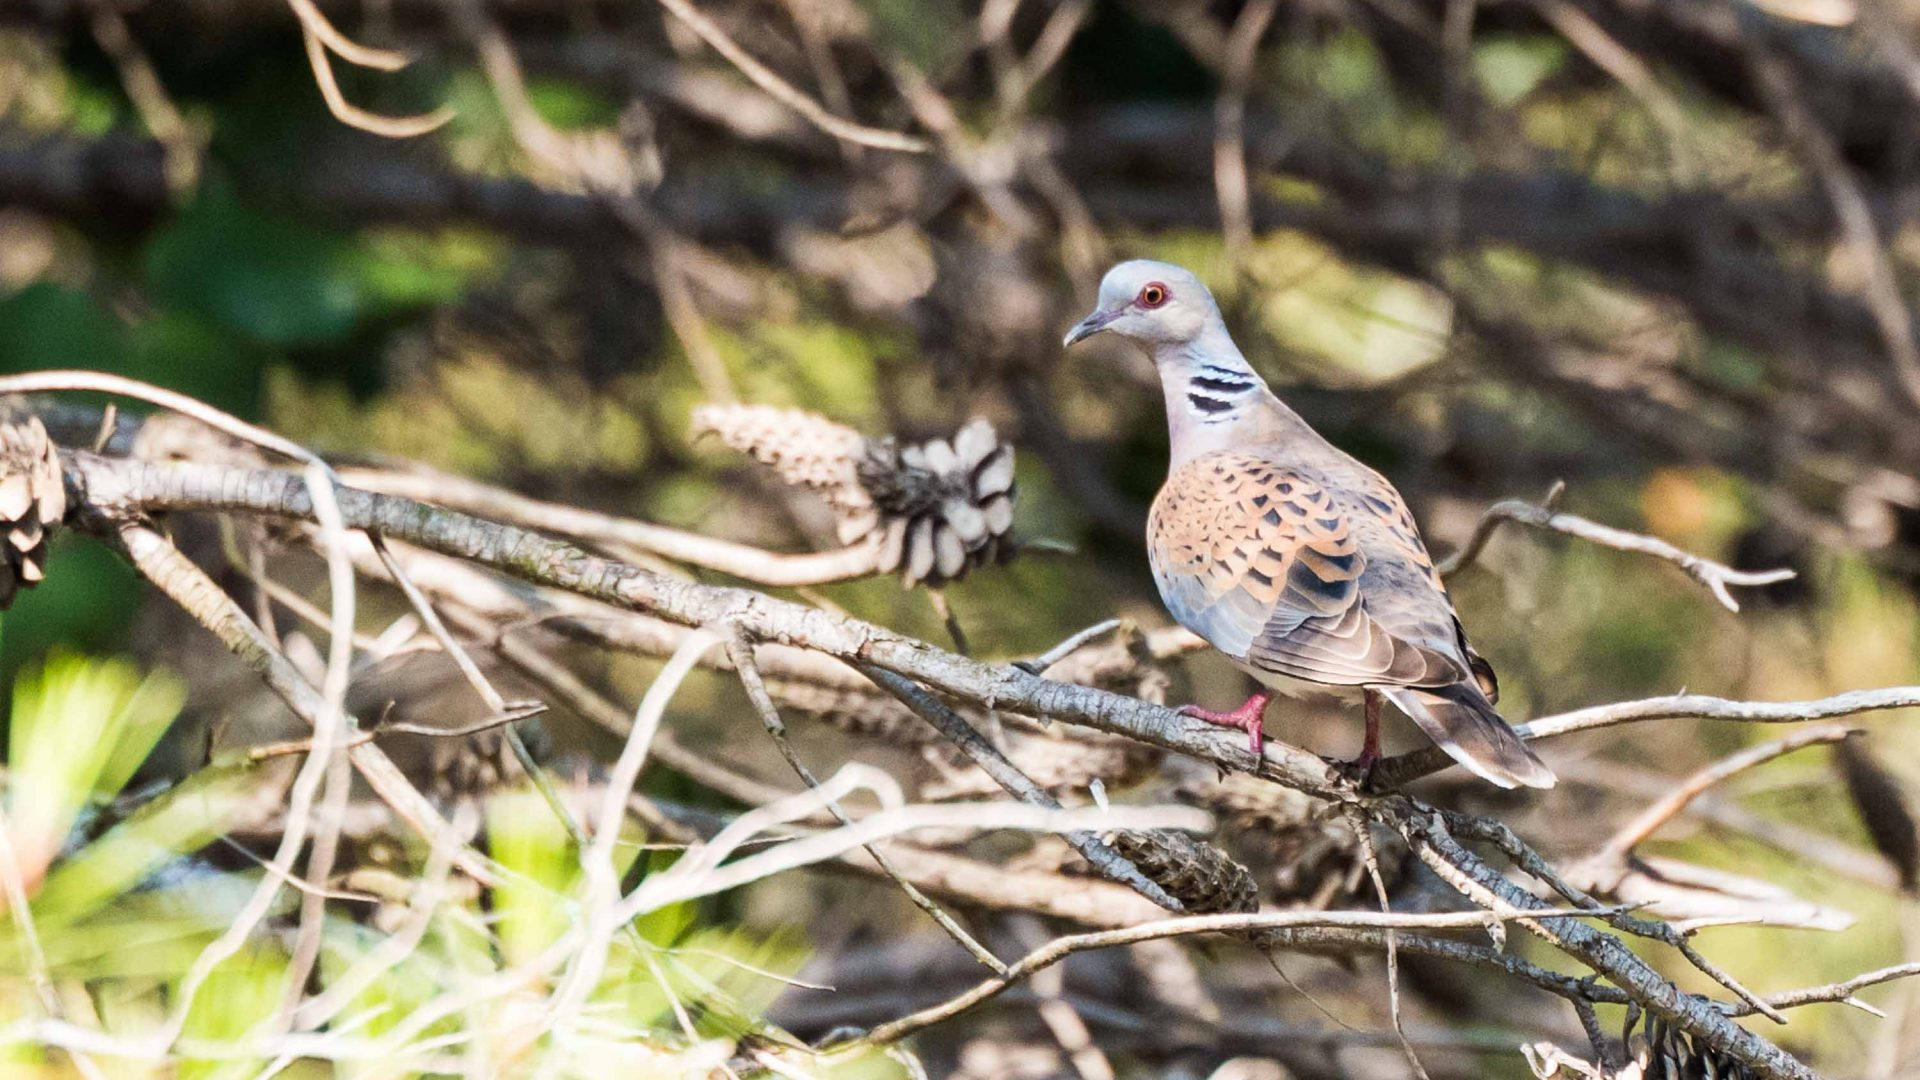 A turtle dove in Negev Desert, Israel.